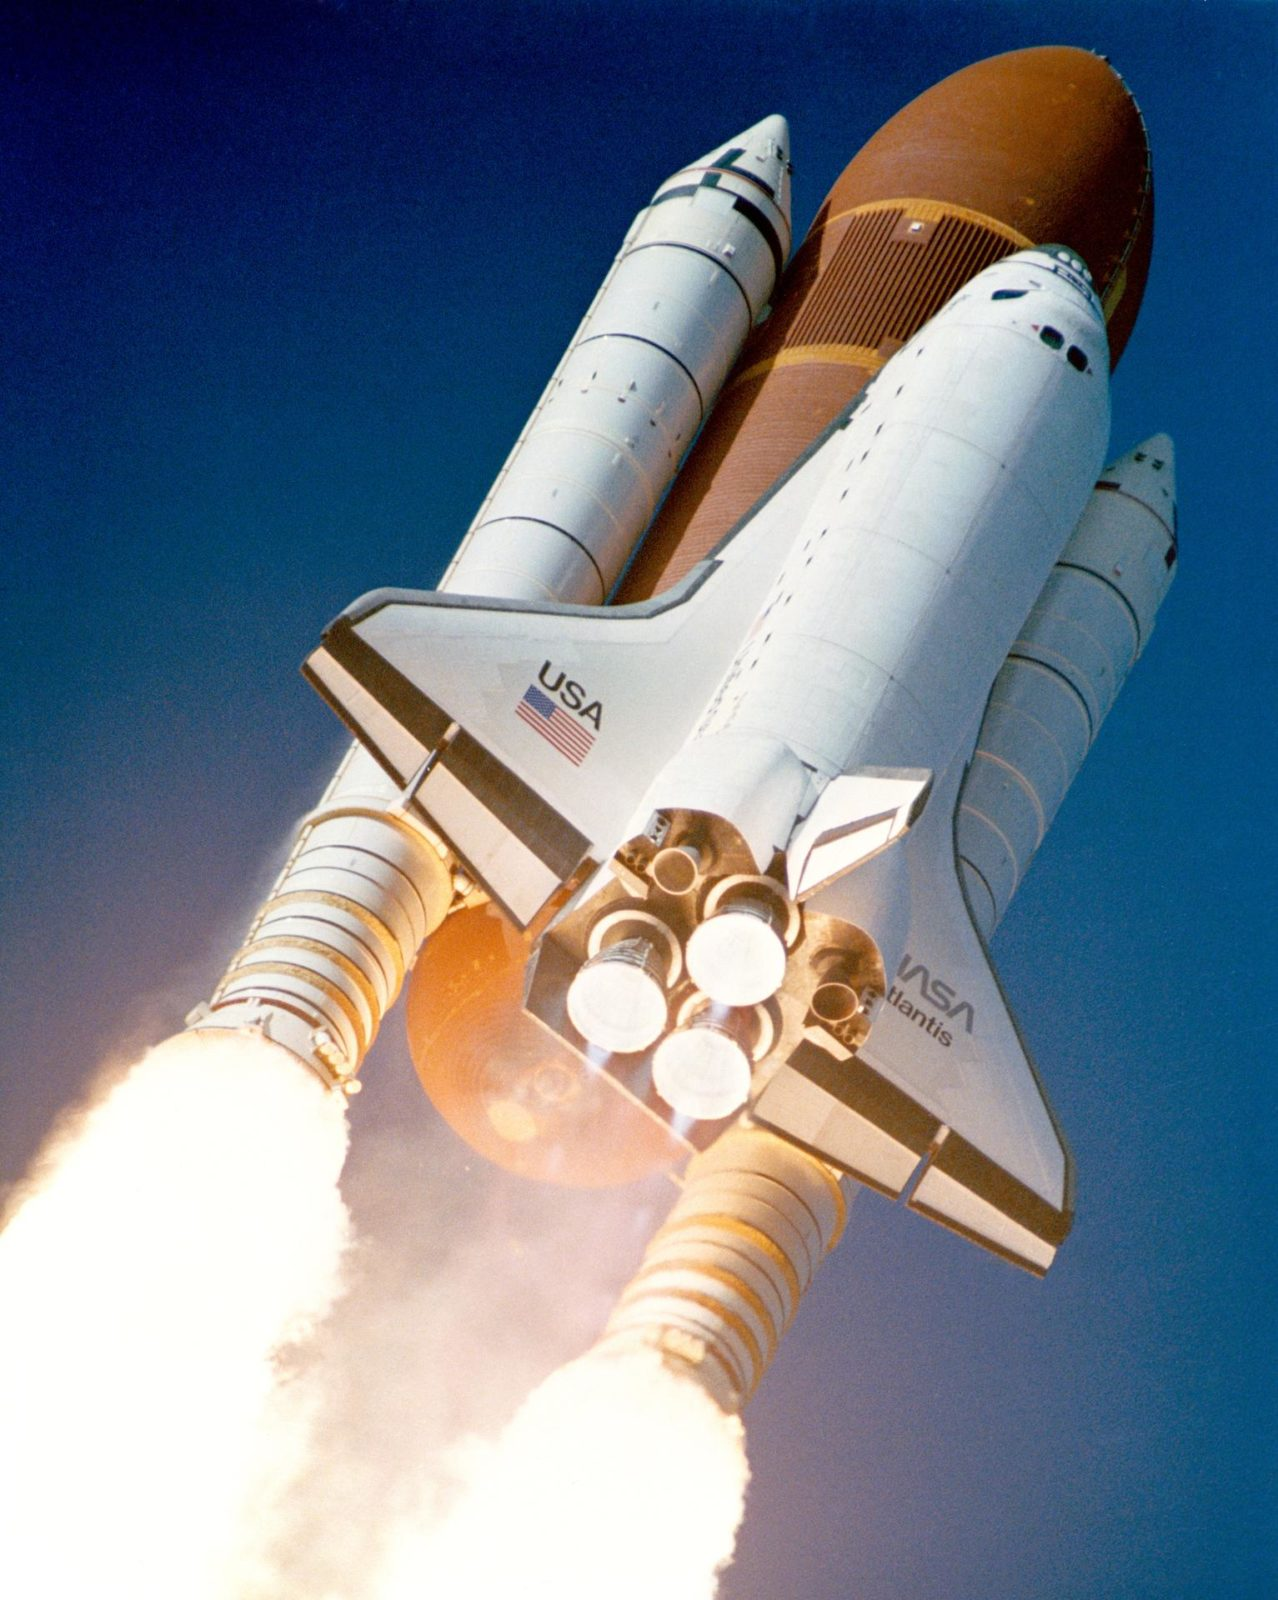 space shuttle challenger - HD 6596×8260